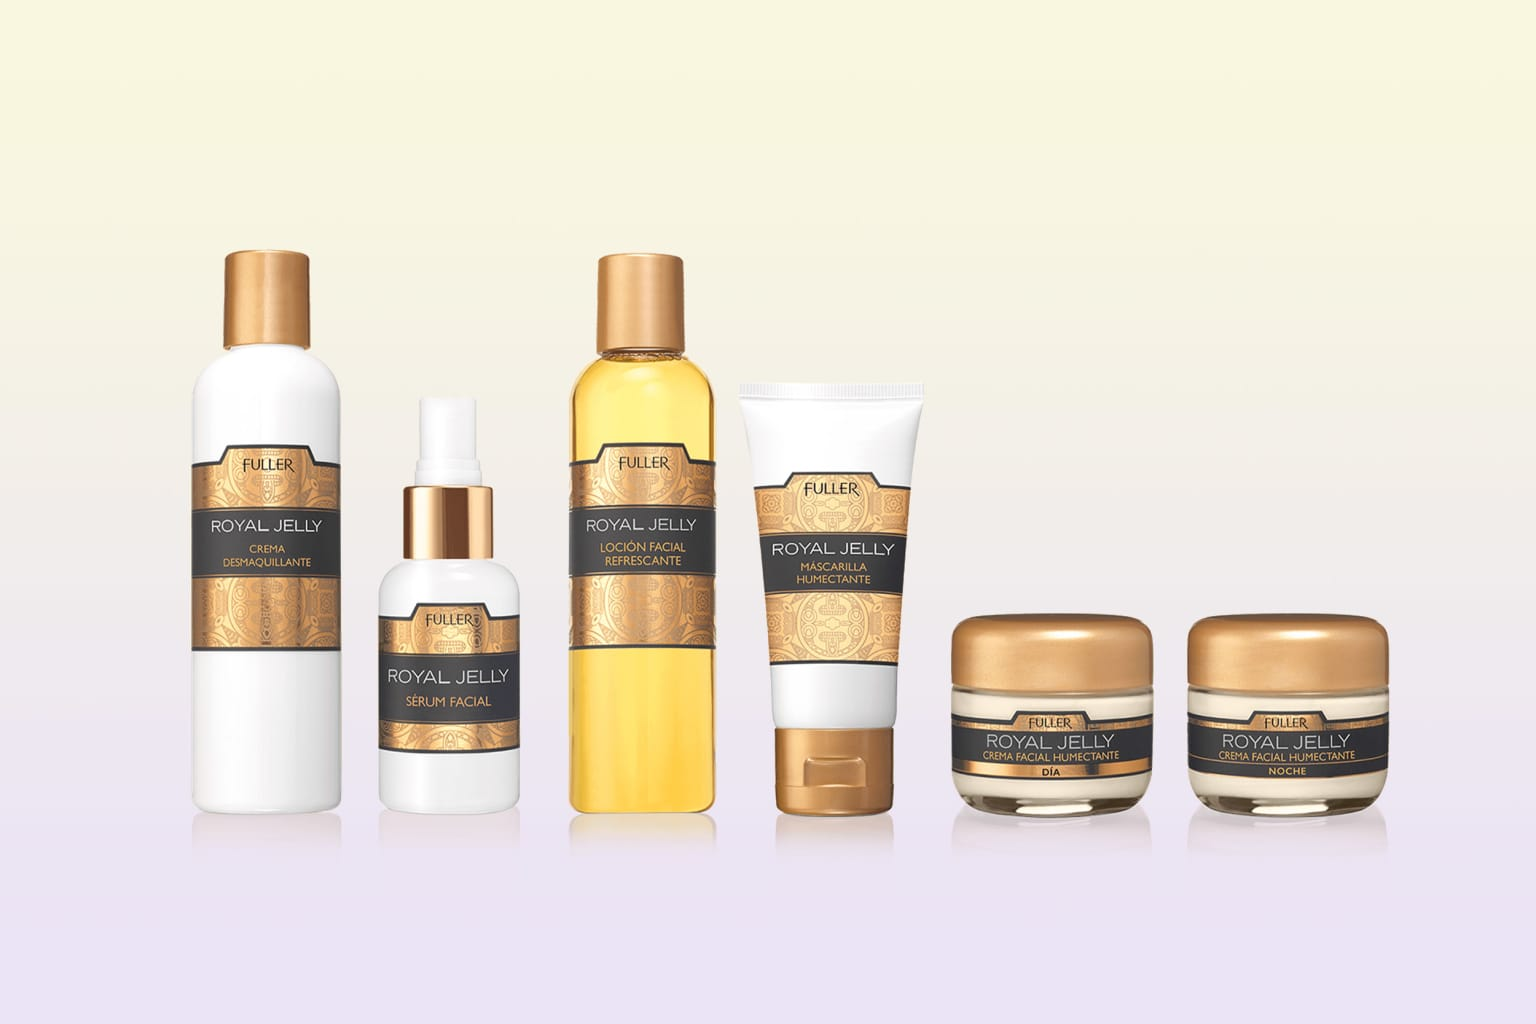 Royal Jelly - skincare packaging redesign